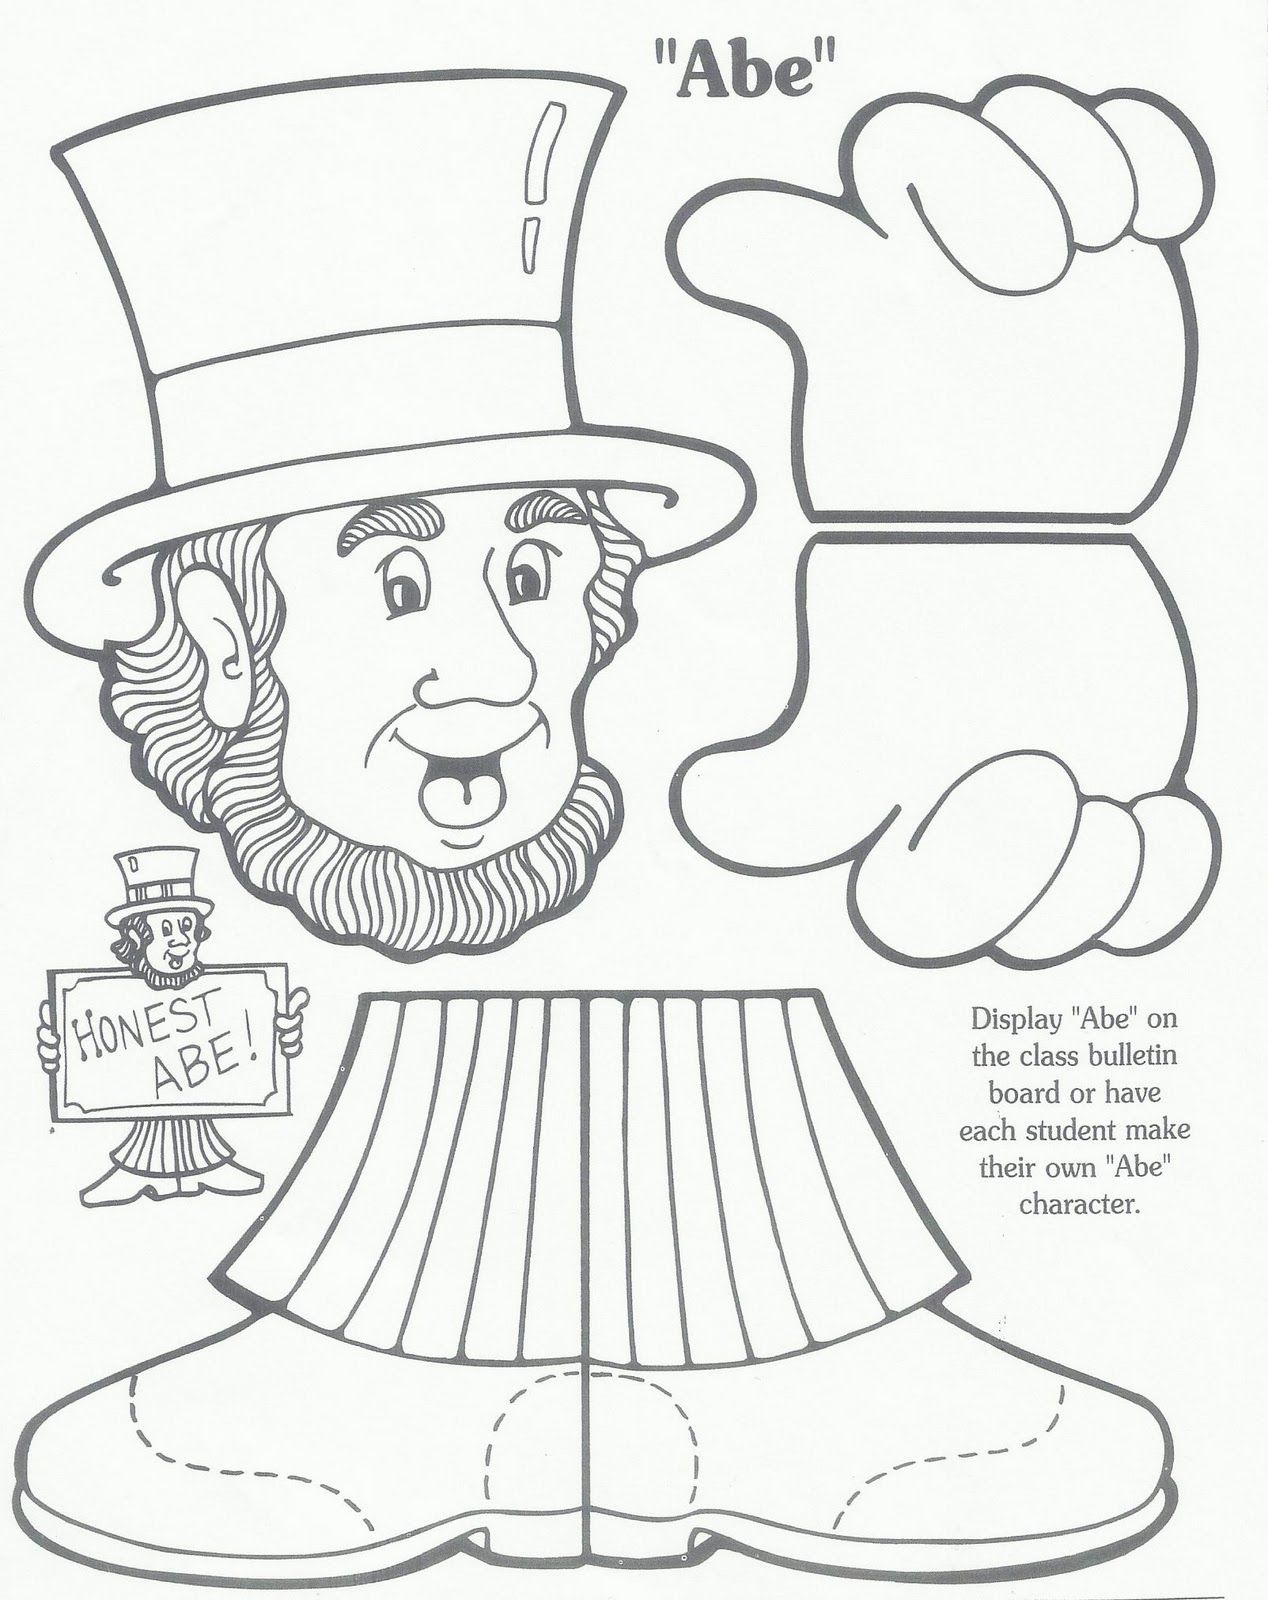 worksheet Abraham Lincoln Worksheets pin by amanda meissner on classroom pinterest toilet paper roll abraham lincoln cut and paste activity for early childhood